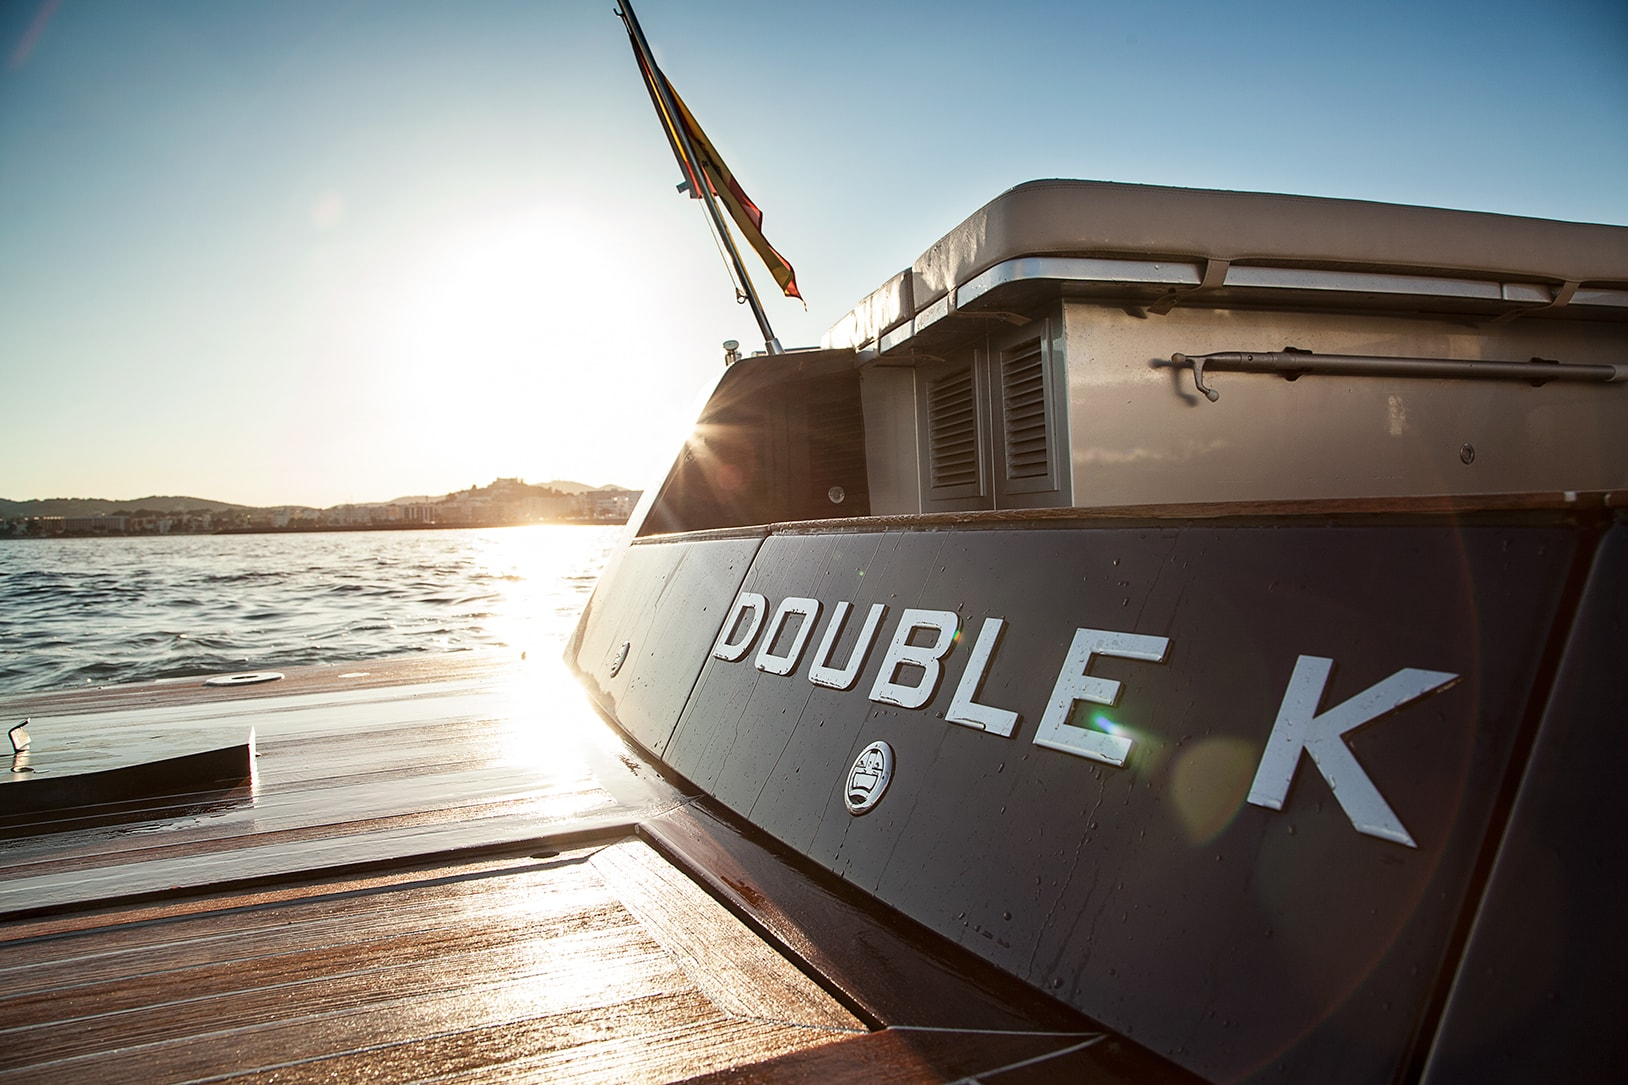 CNM CONTINENTAL 50 - DOUBLE K exterior (16)